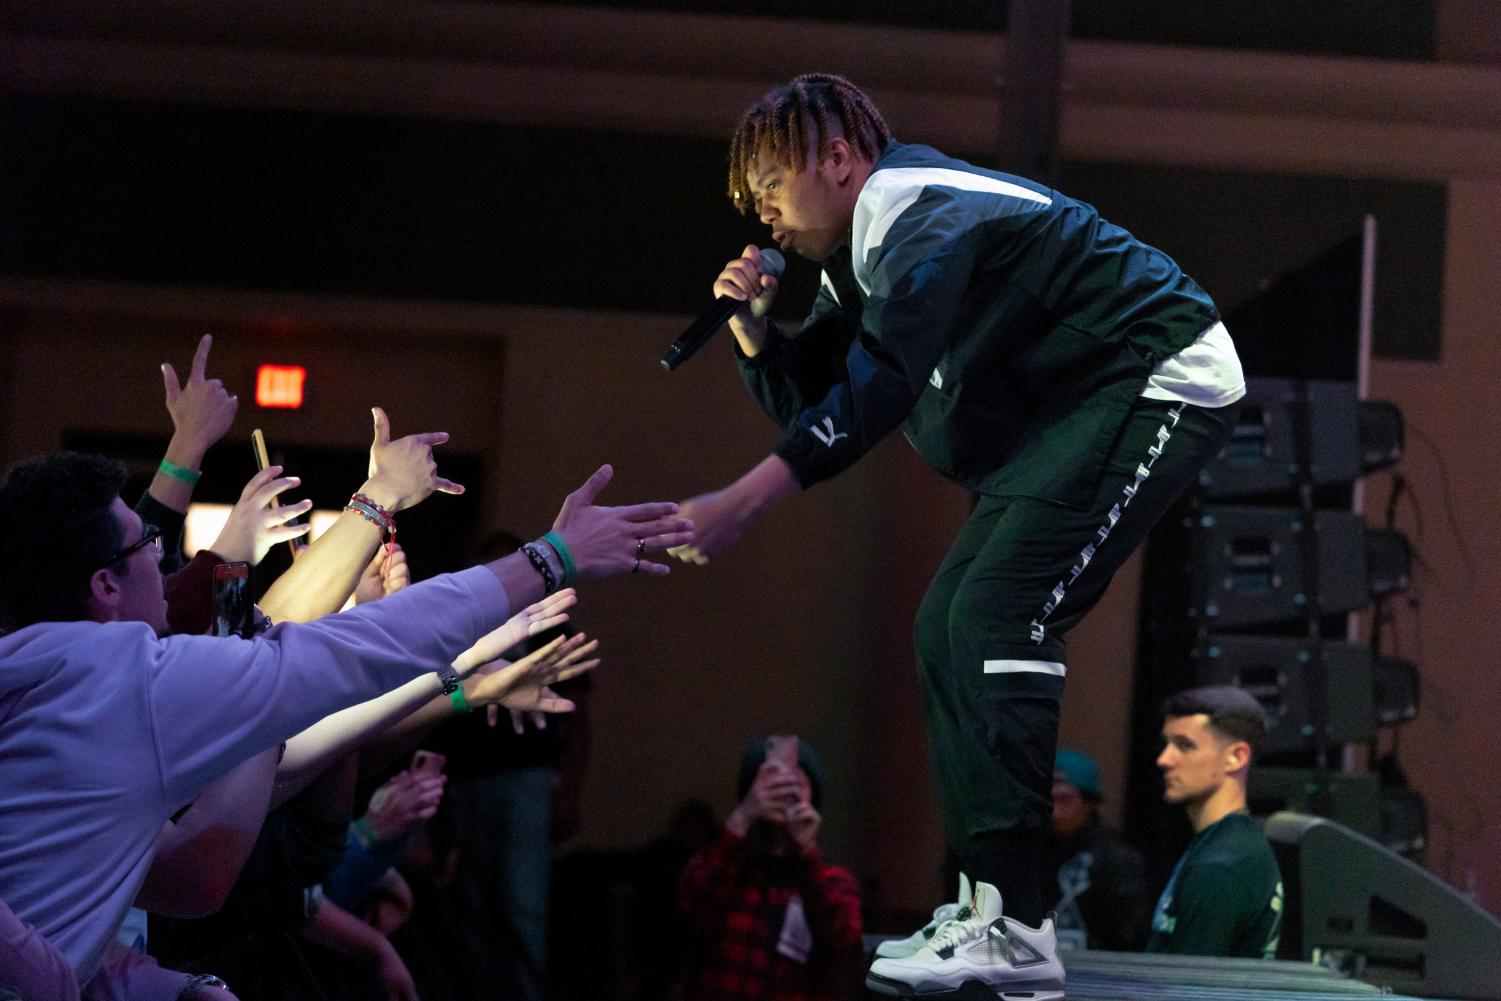 YBN+Cordae+ended+UNIQUE%27s+40th+anniversary+celebration+by+performing+an+unreleased+song+from+his+upcoming+music+project+in+the+University+Union+Ballroom+Thursday.